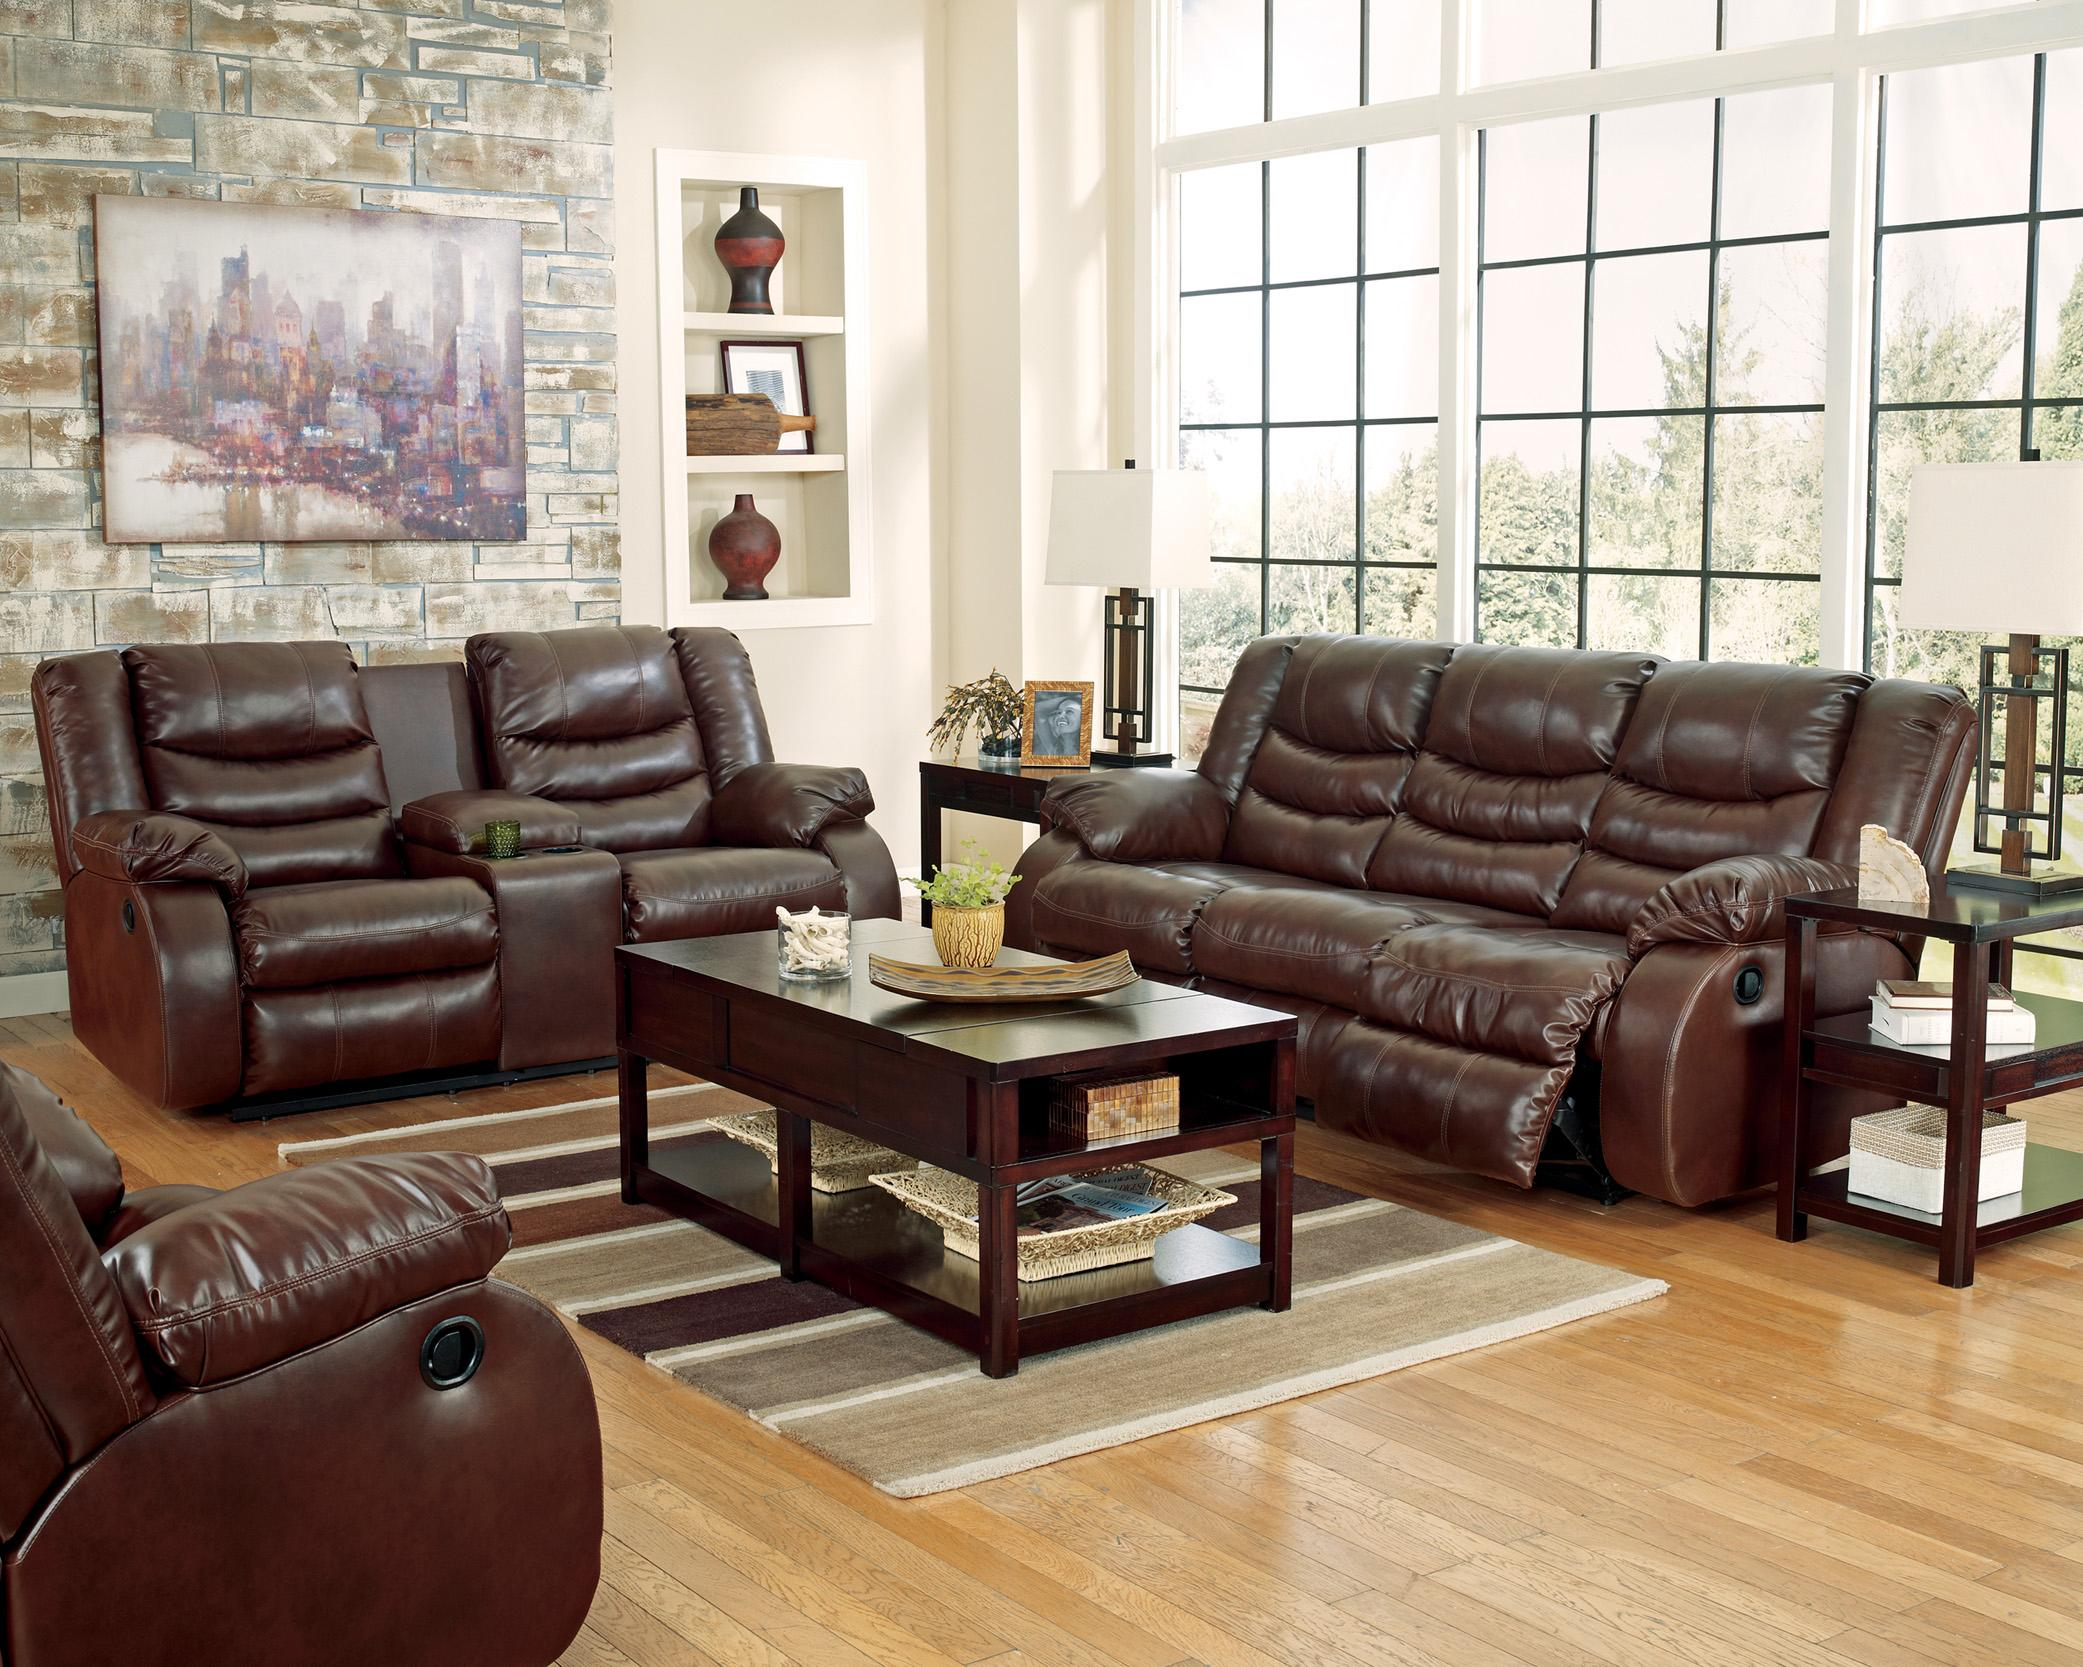 Benchcraft Linebacker DuraBlend - Espresso Reclining Living Room Group - Item Number: 95201 Living Room Group 3